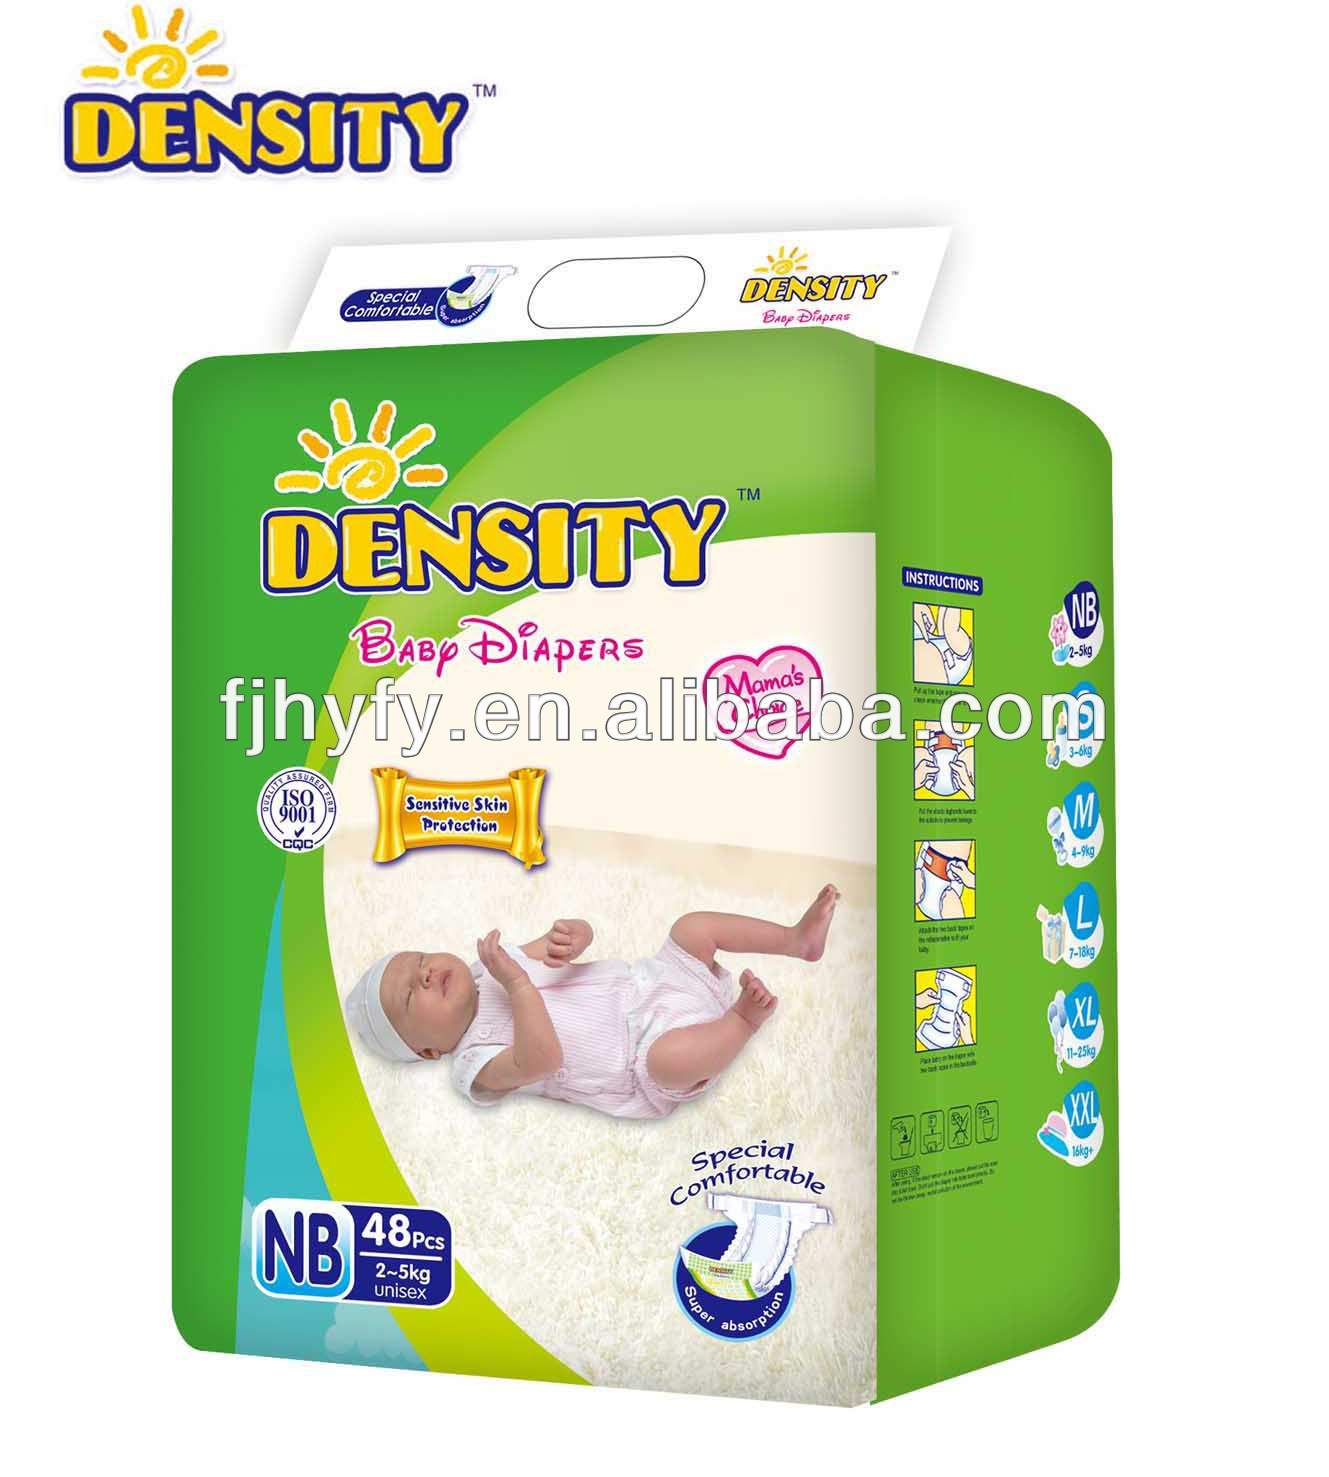 Disposable Baby Diapers, with NB size, Super soft perforated cotton fibre surface, Sumitomo SAP, magic tape